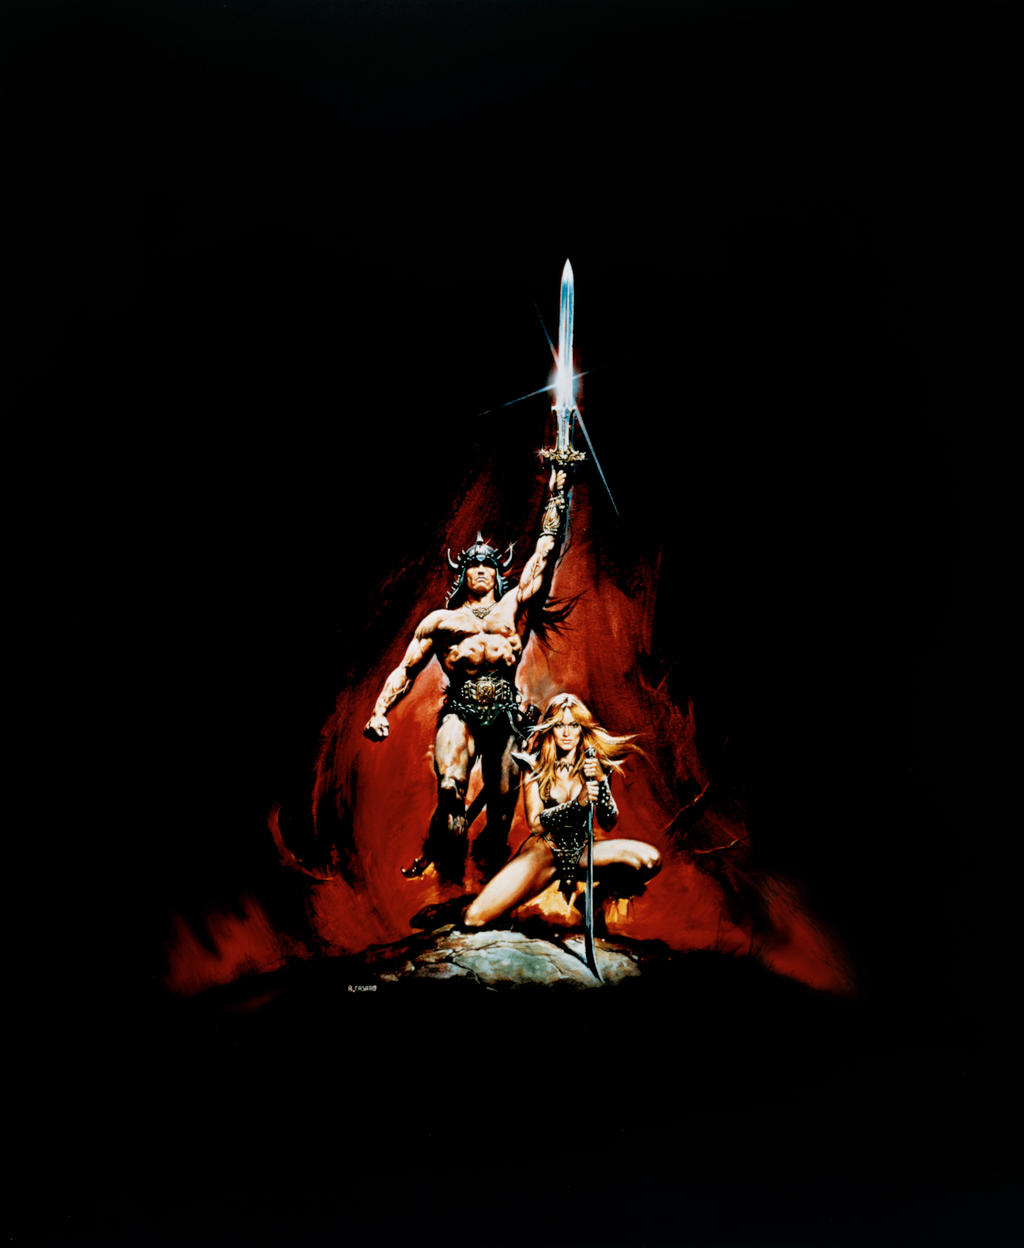 Conan The Barbarian [Hi-Res Textless Poster] By